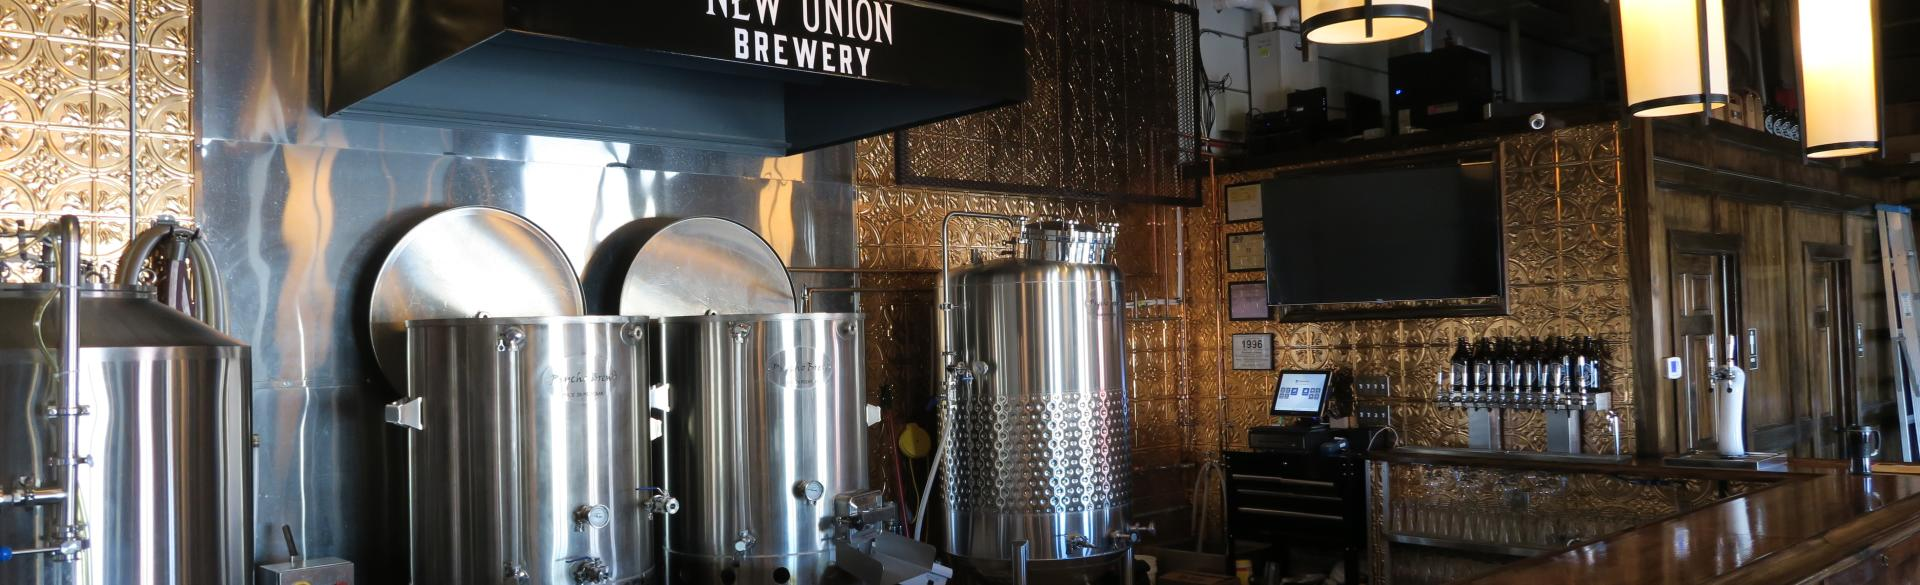 New Union Brewery